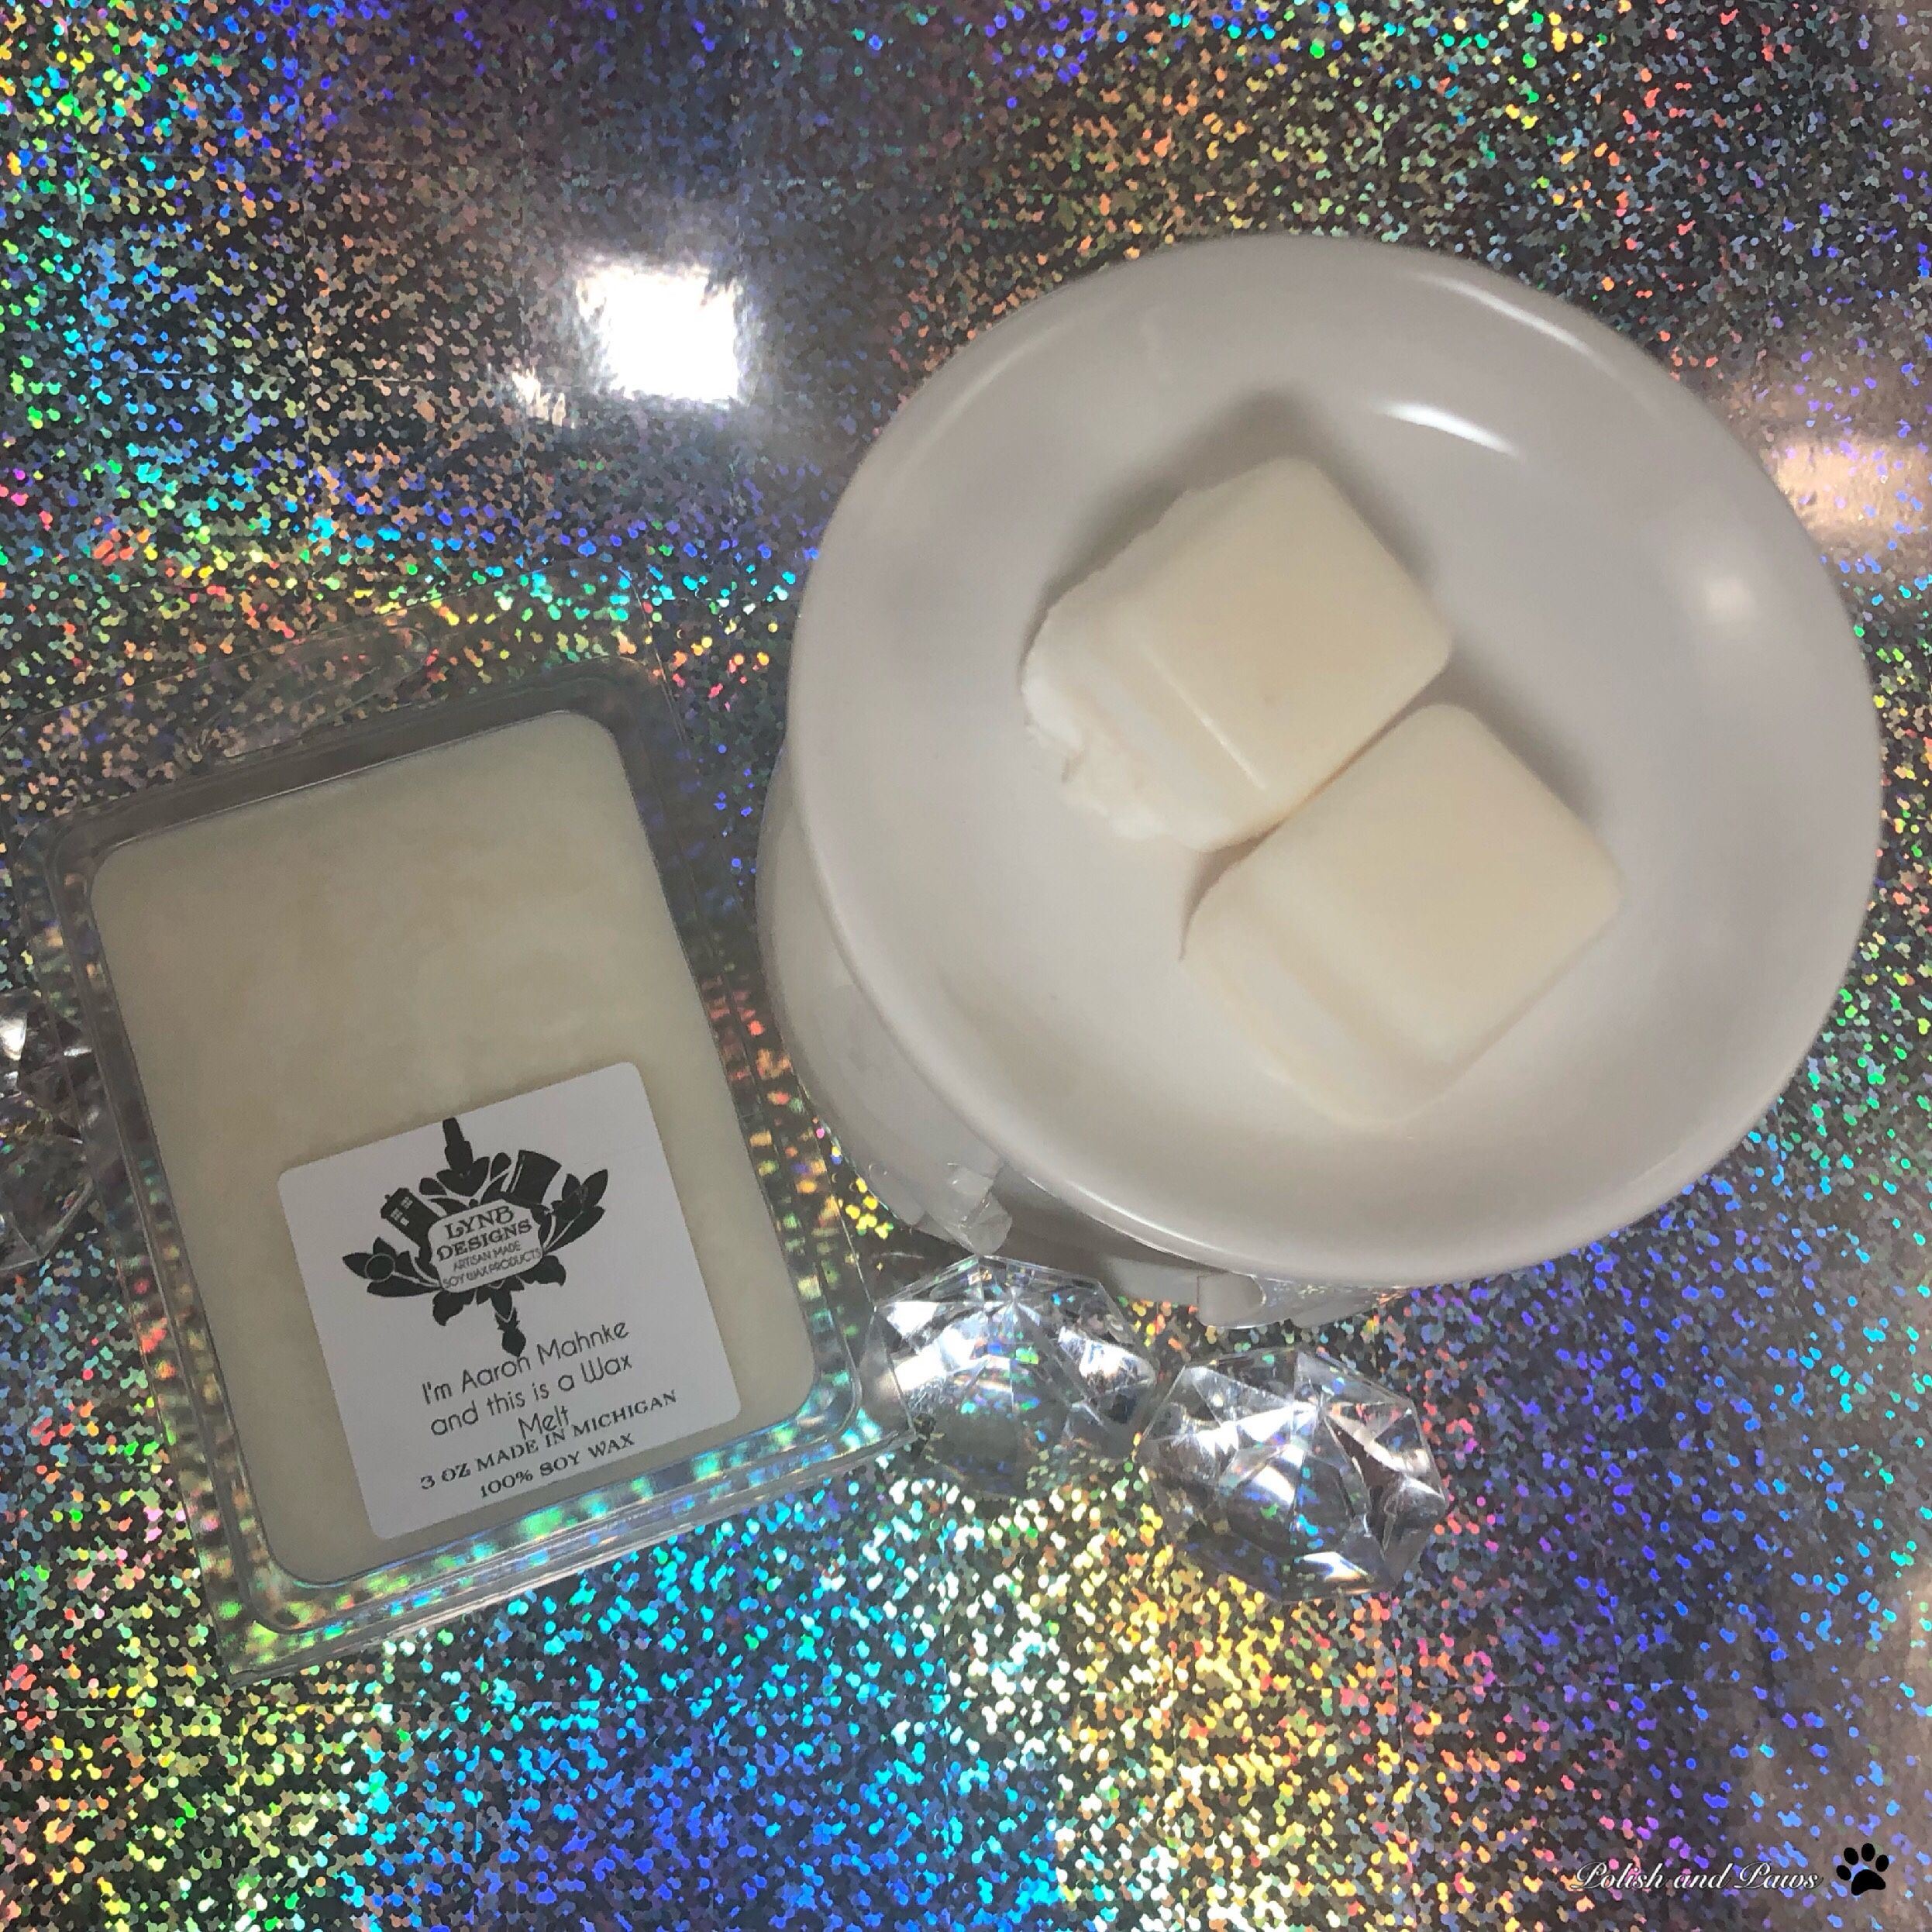 LynB Designs I'm Aaron Mahnke and this is a Wax Melt